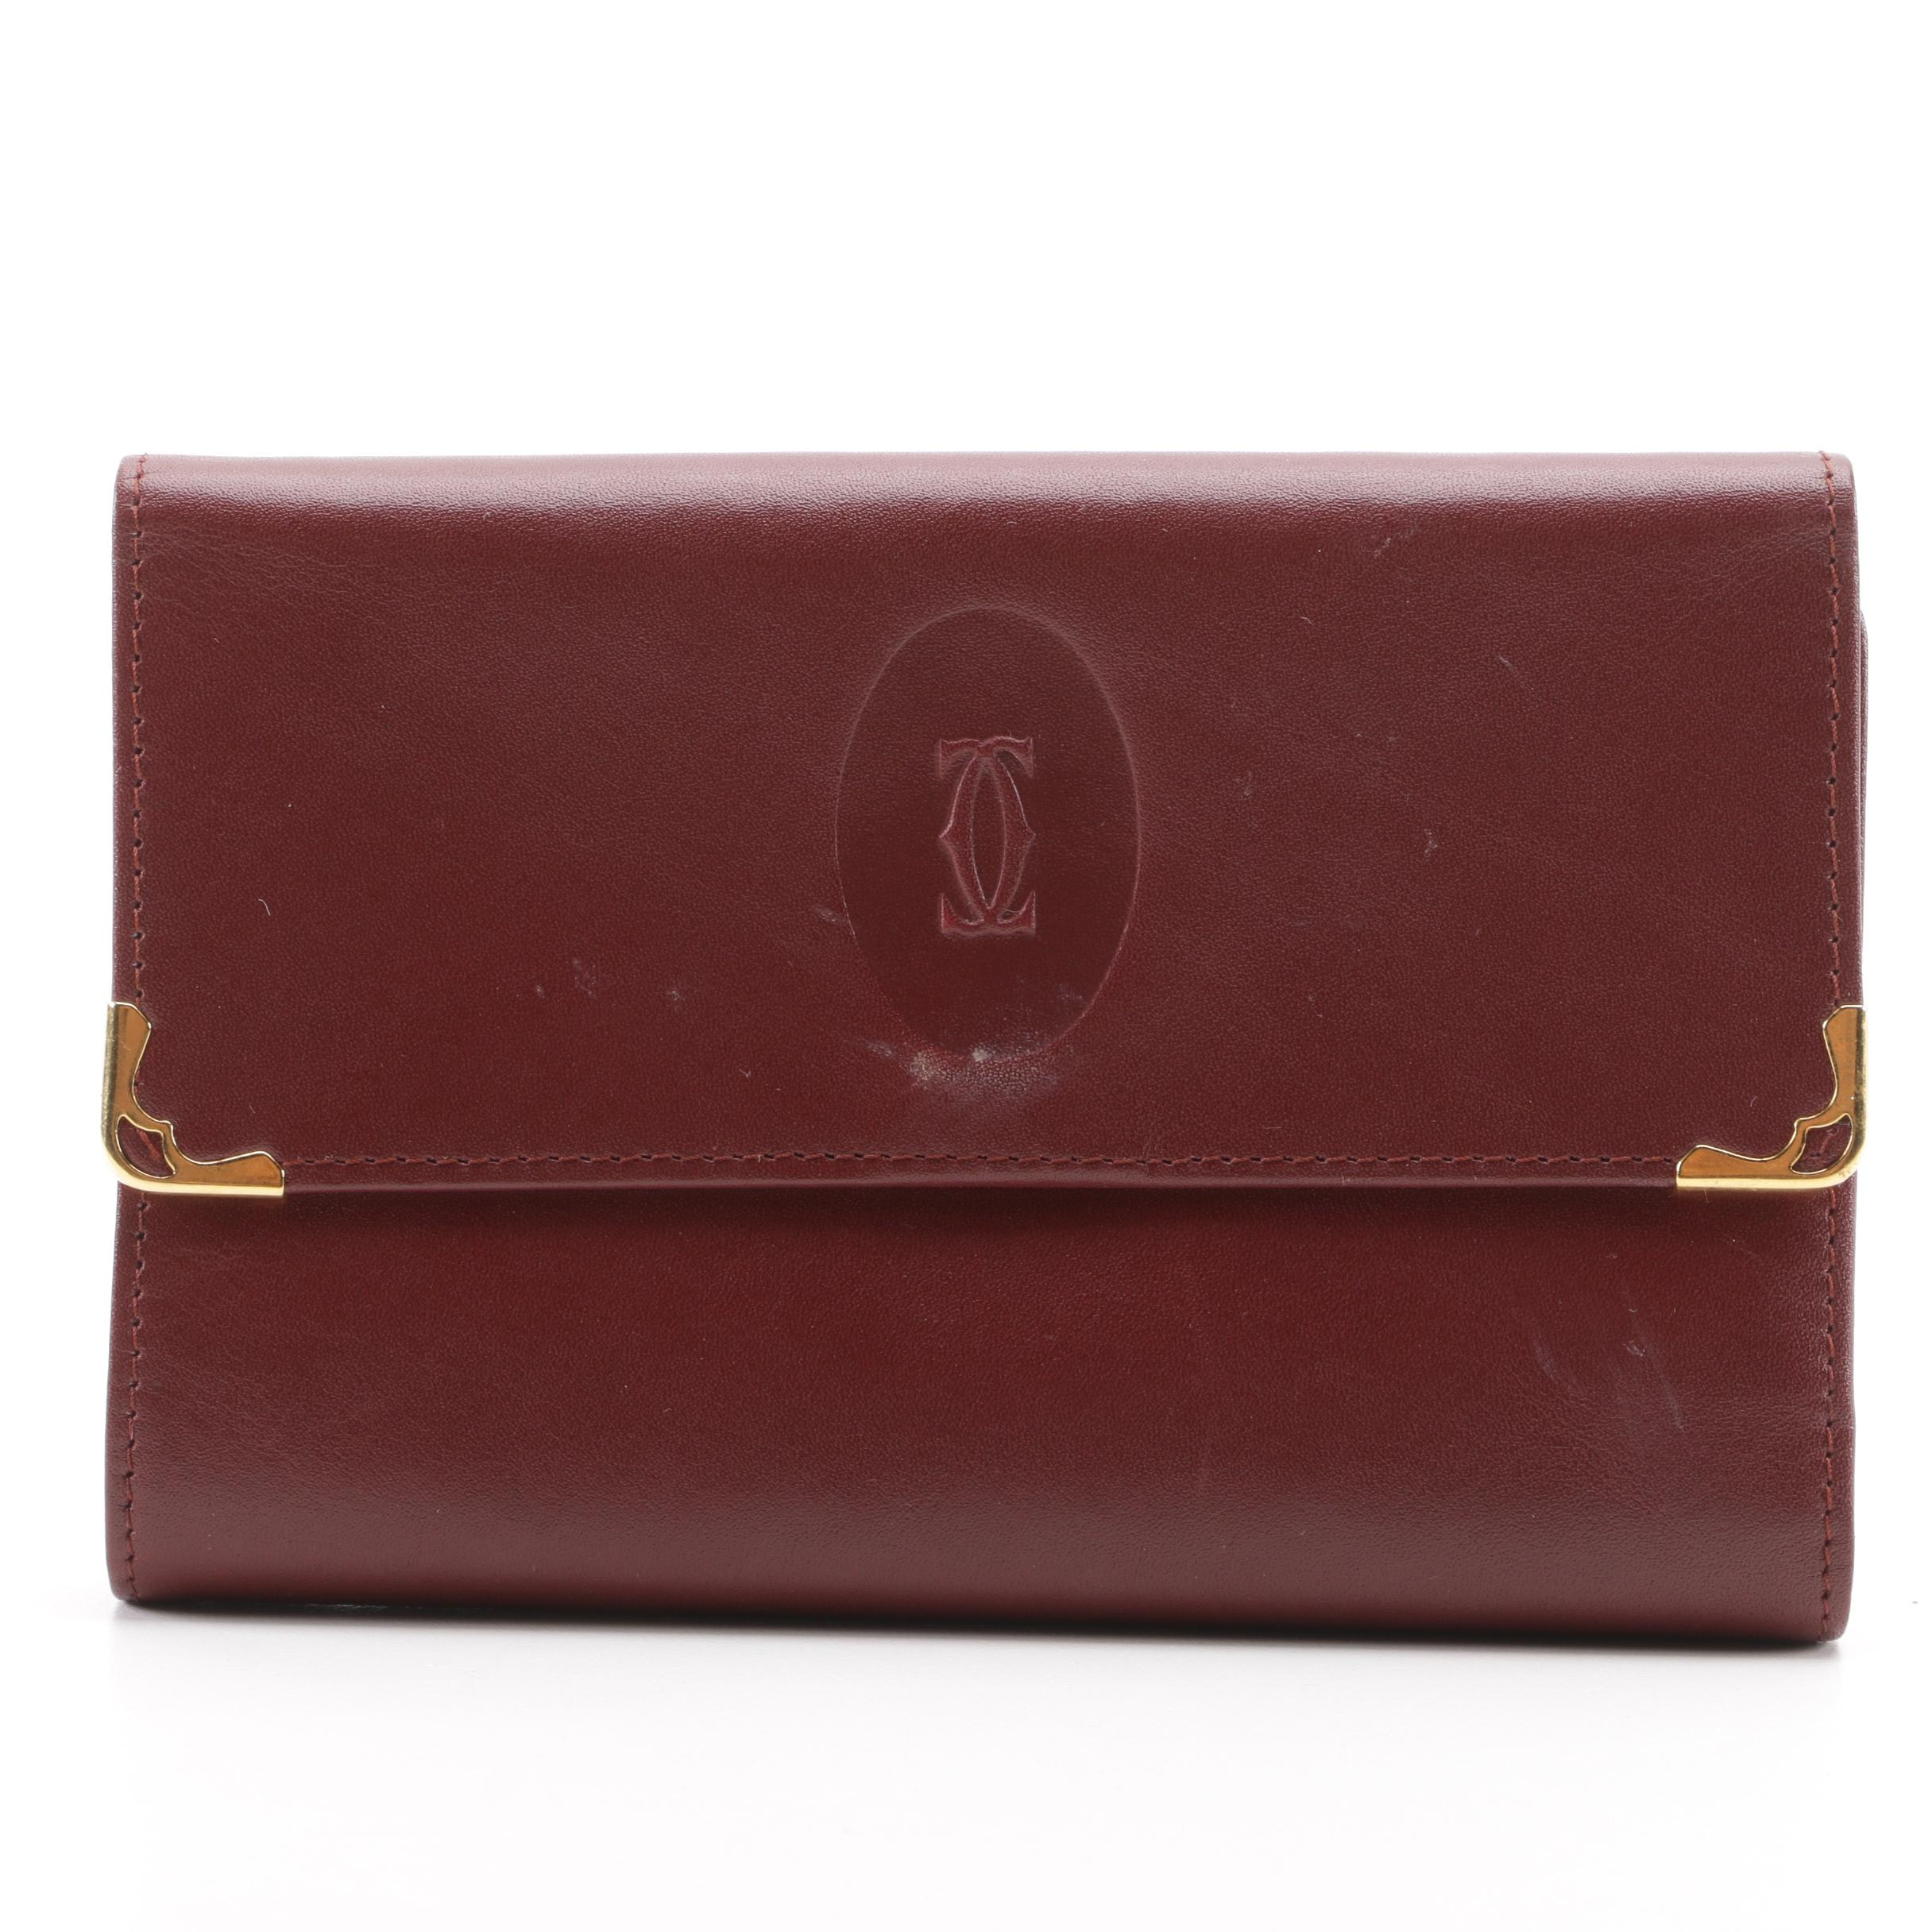 Must de Cartier Paris Burgundy Leather Portefueille